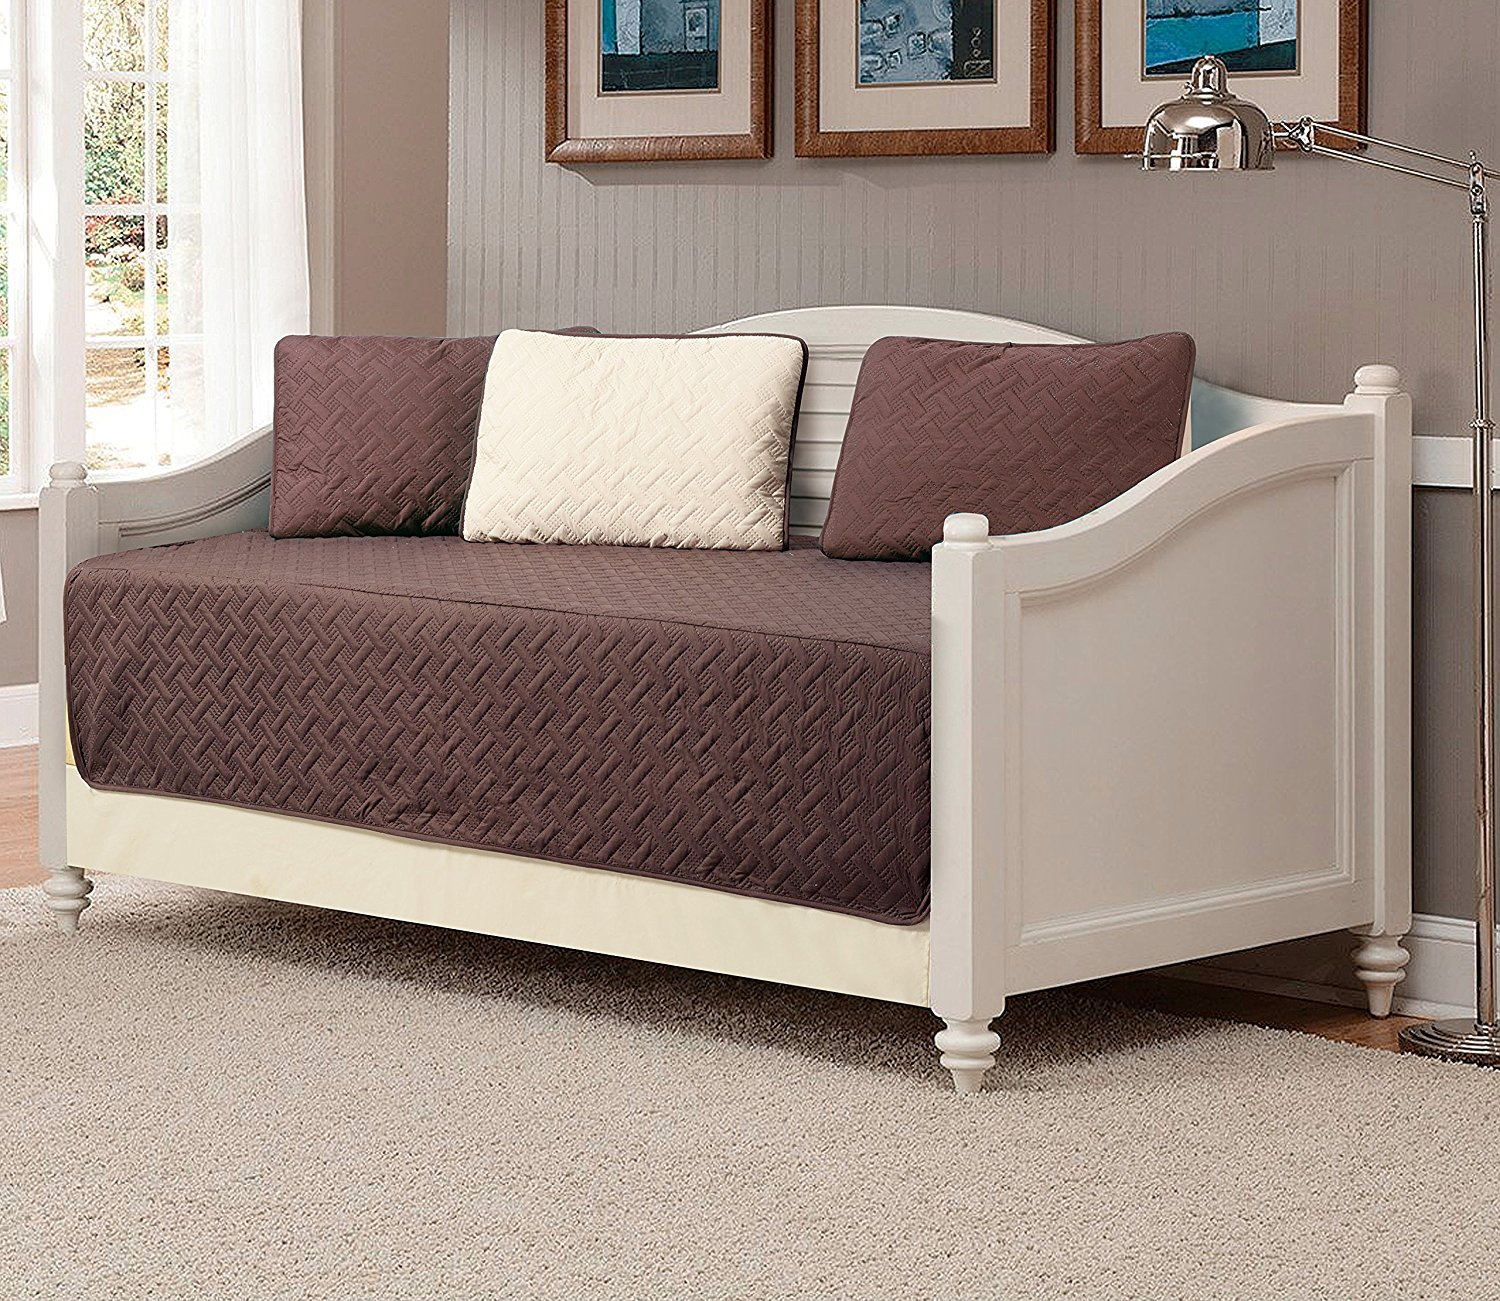 Linen Plus 5pc Daybed Cover Set Reversible Embossed Bedspread Coffee Brown/Beige New